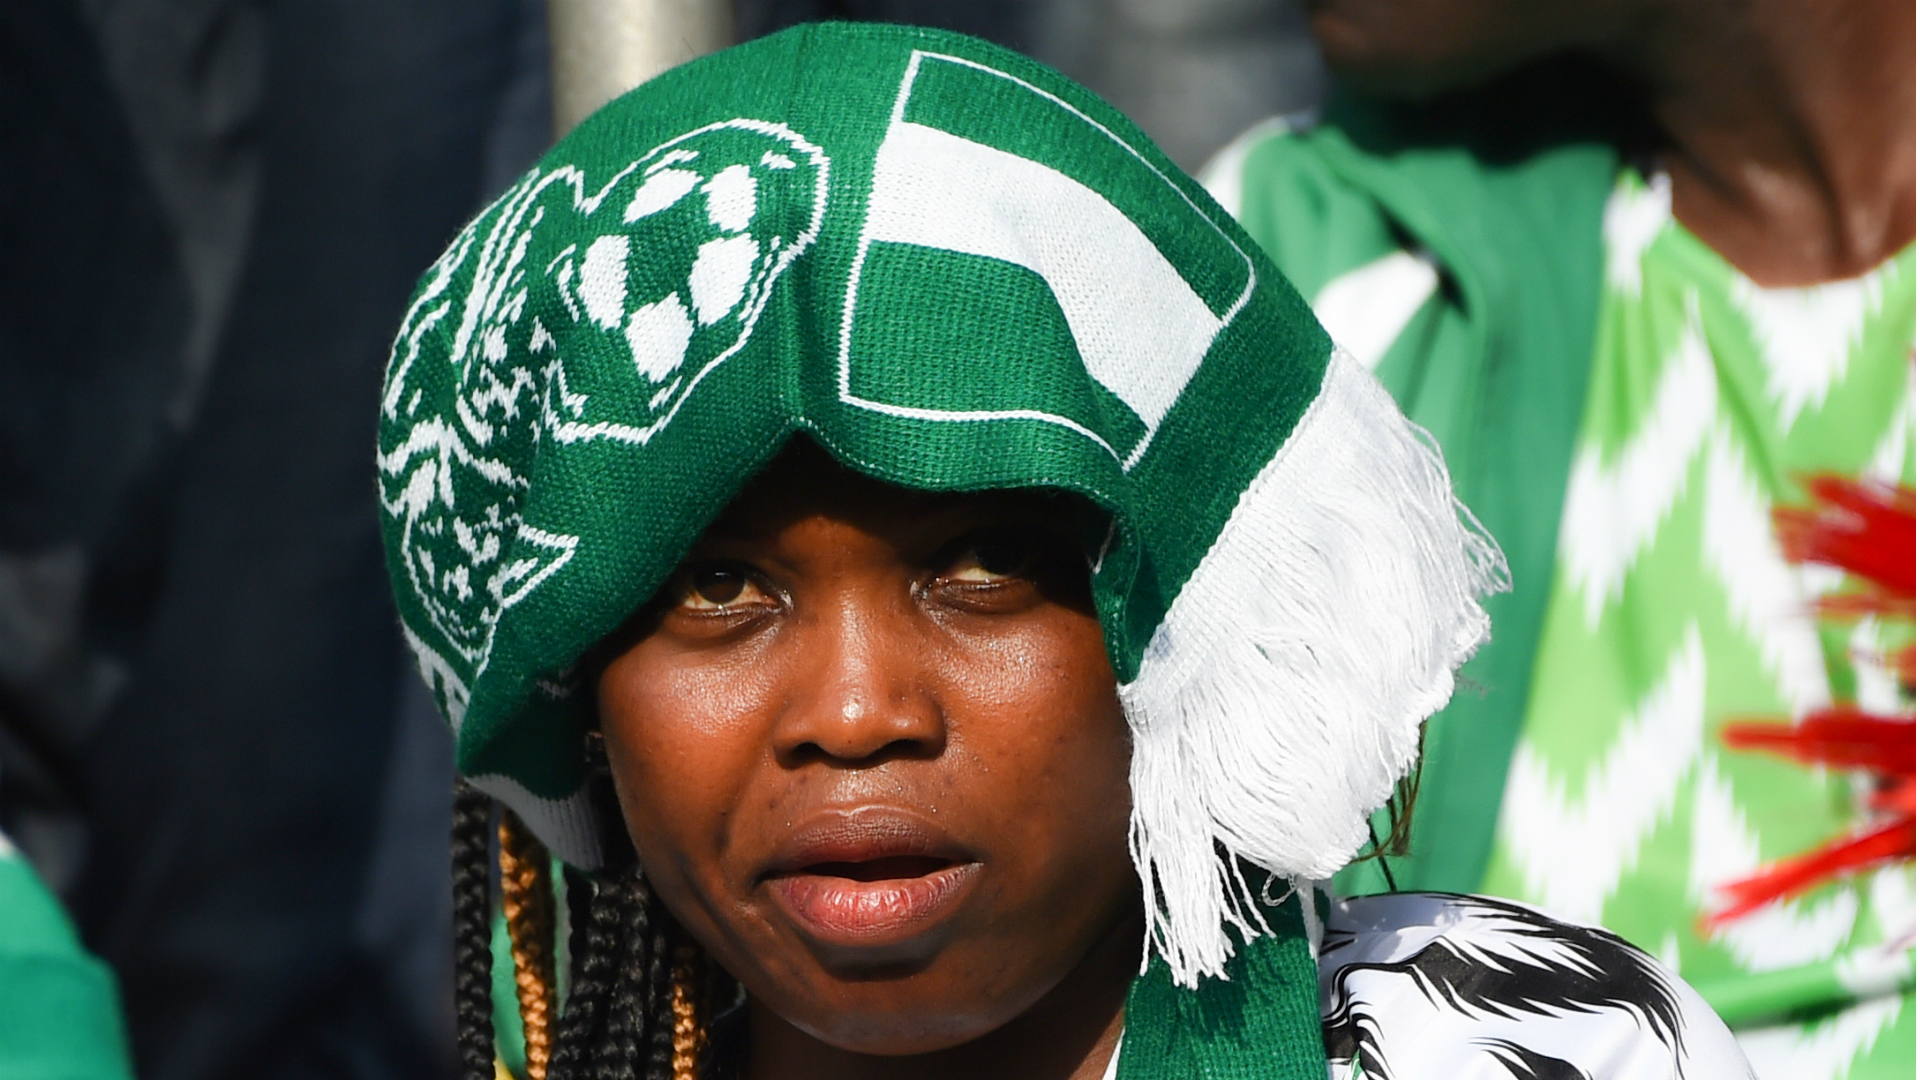 U23 Afcon: 'What's happening to Nigerian football?' - Fans reaction